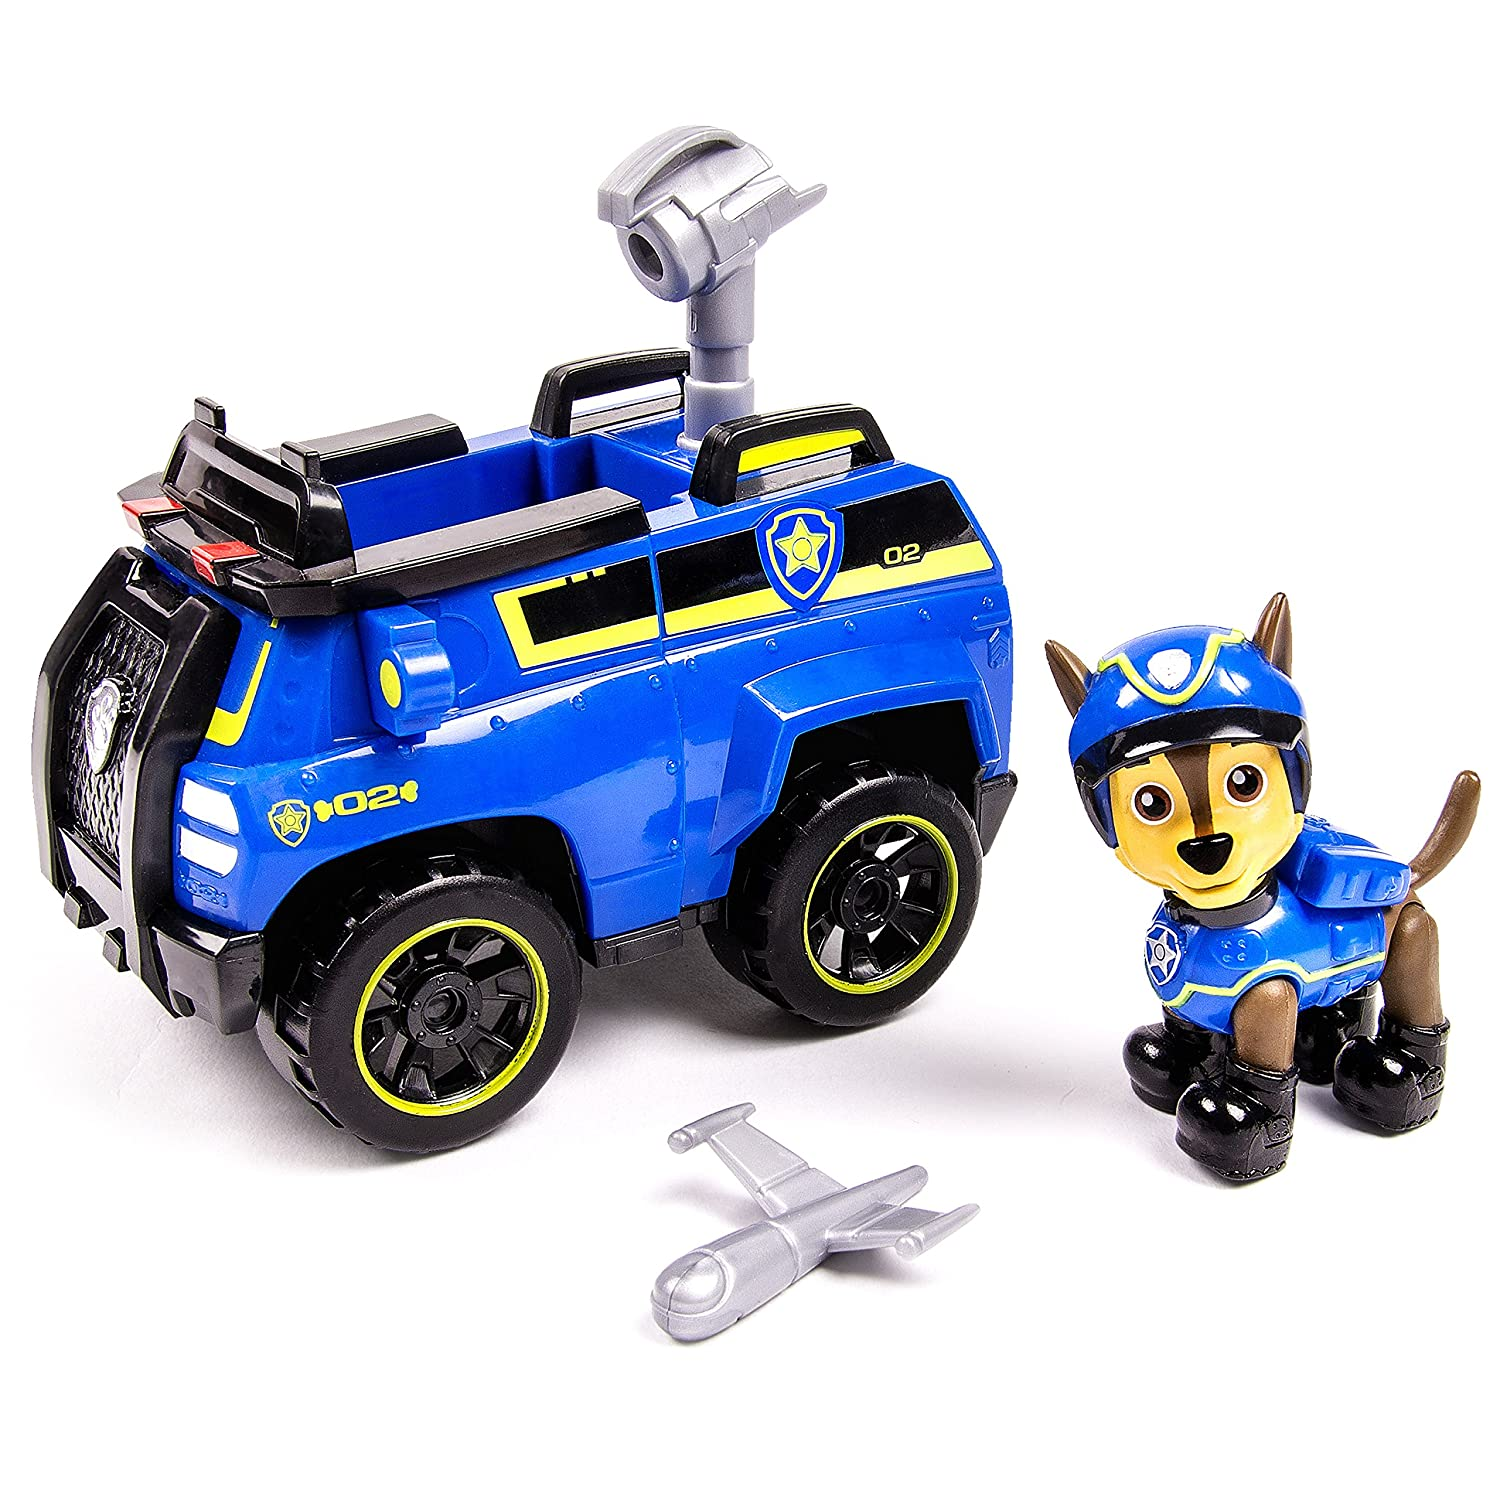 Paw Patrol Chase's Spy Cruiser, Vehicle and Figure (works with Paw Patroller) Spin Master 20068612-6026594